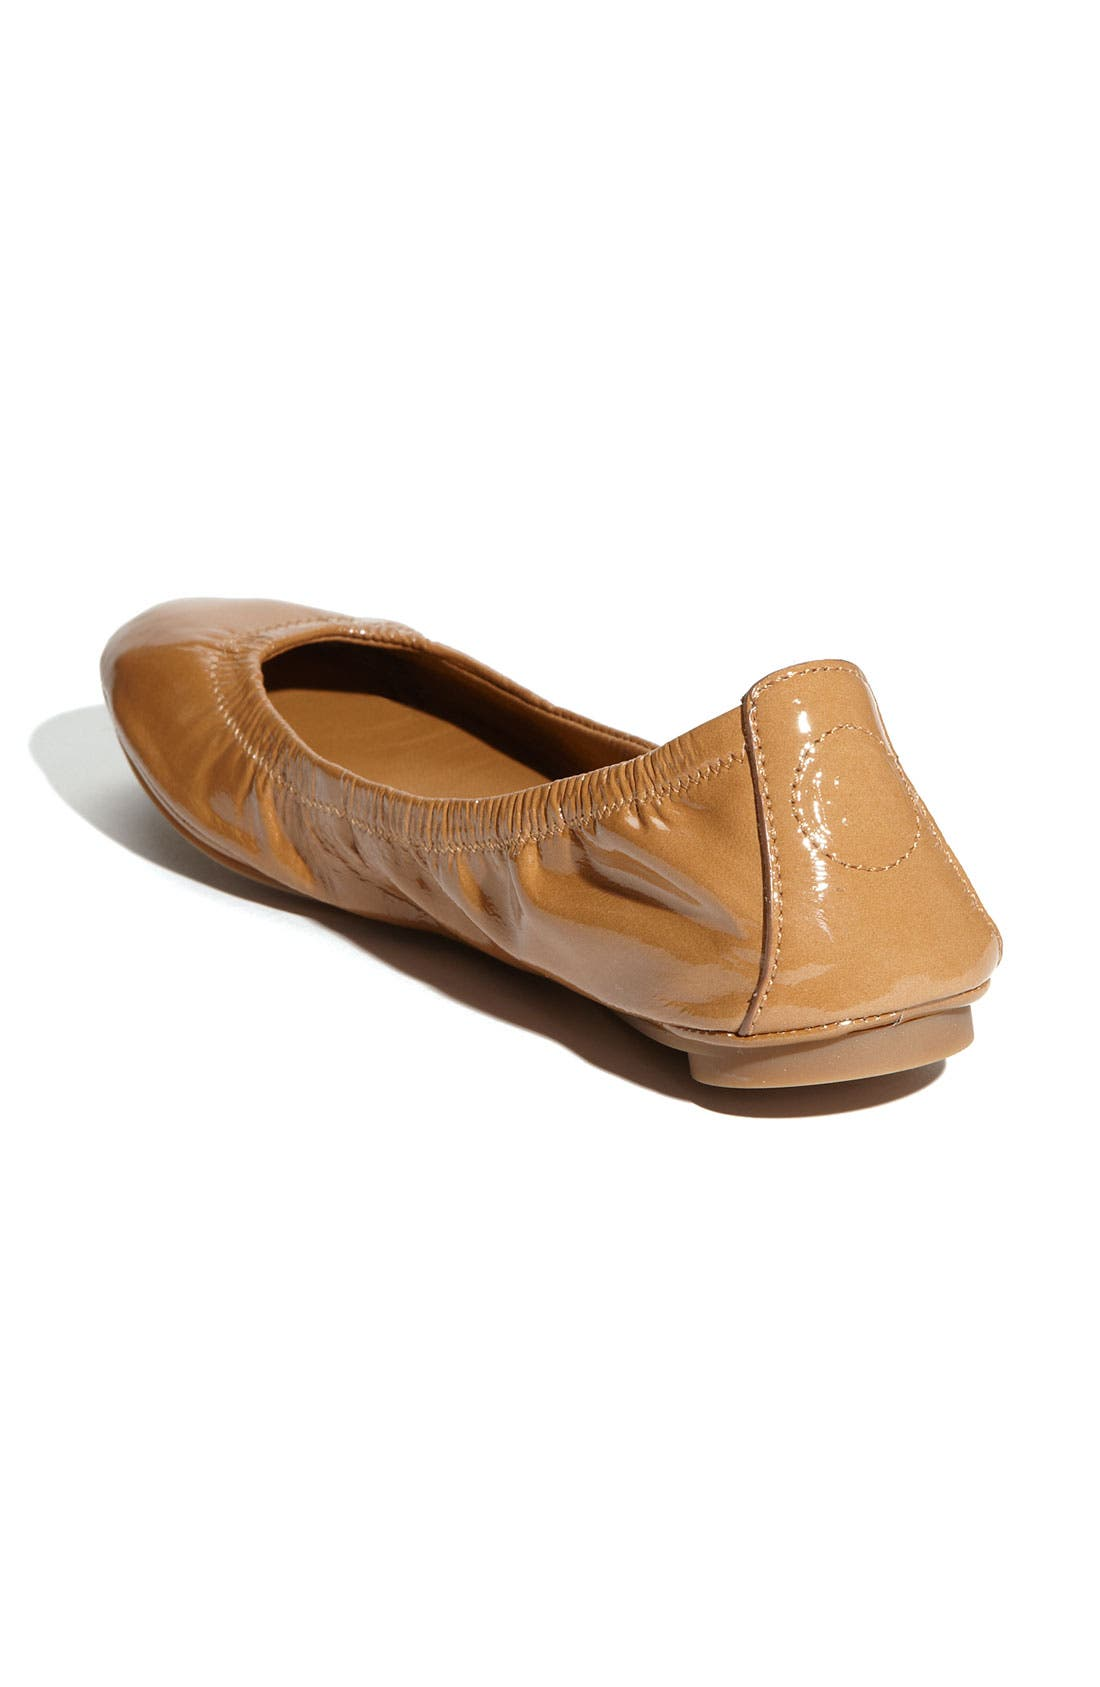 Alternate Image 2  - Tory Burch 'Eddie' Ballerina Flat